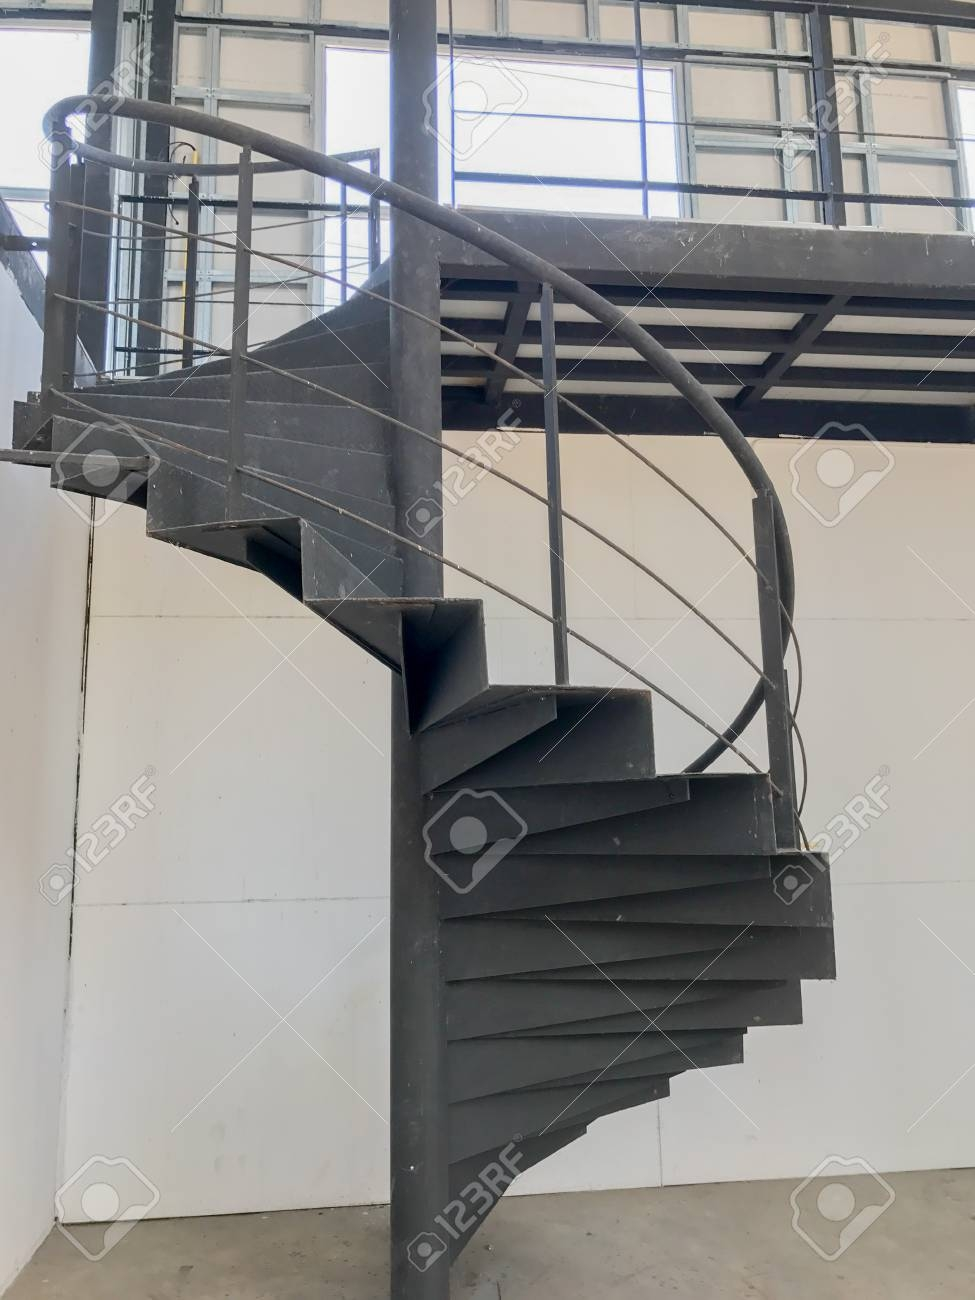 Black Metal Spiral Staircase In Thailand Stock Photo Picture And   Black Metal Spiral Staircase   Spiral Stairs   Cat Spiral   Arke   Abandoned   Circle Metal